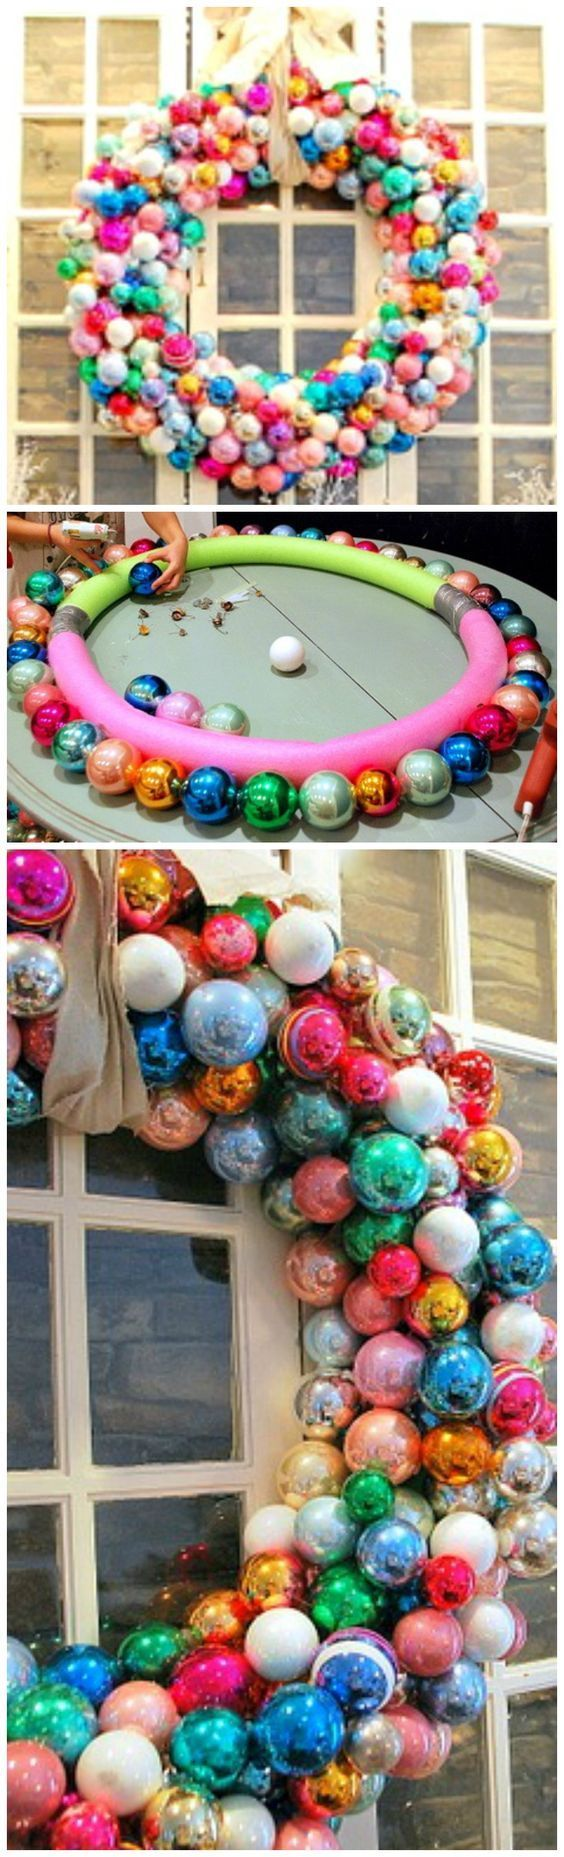 Giant ornament wreath using a pool noodle! 3 Foot Wide Ornament Wreath Tutorial | Sweet Pickins Furniture